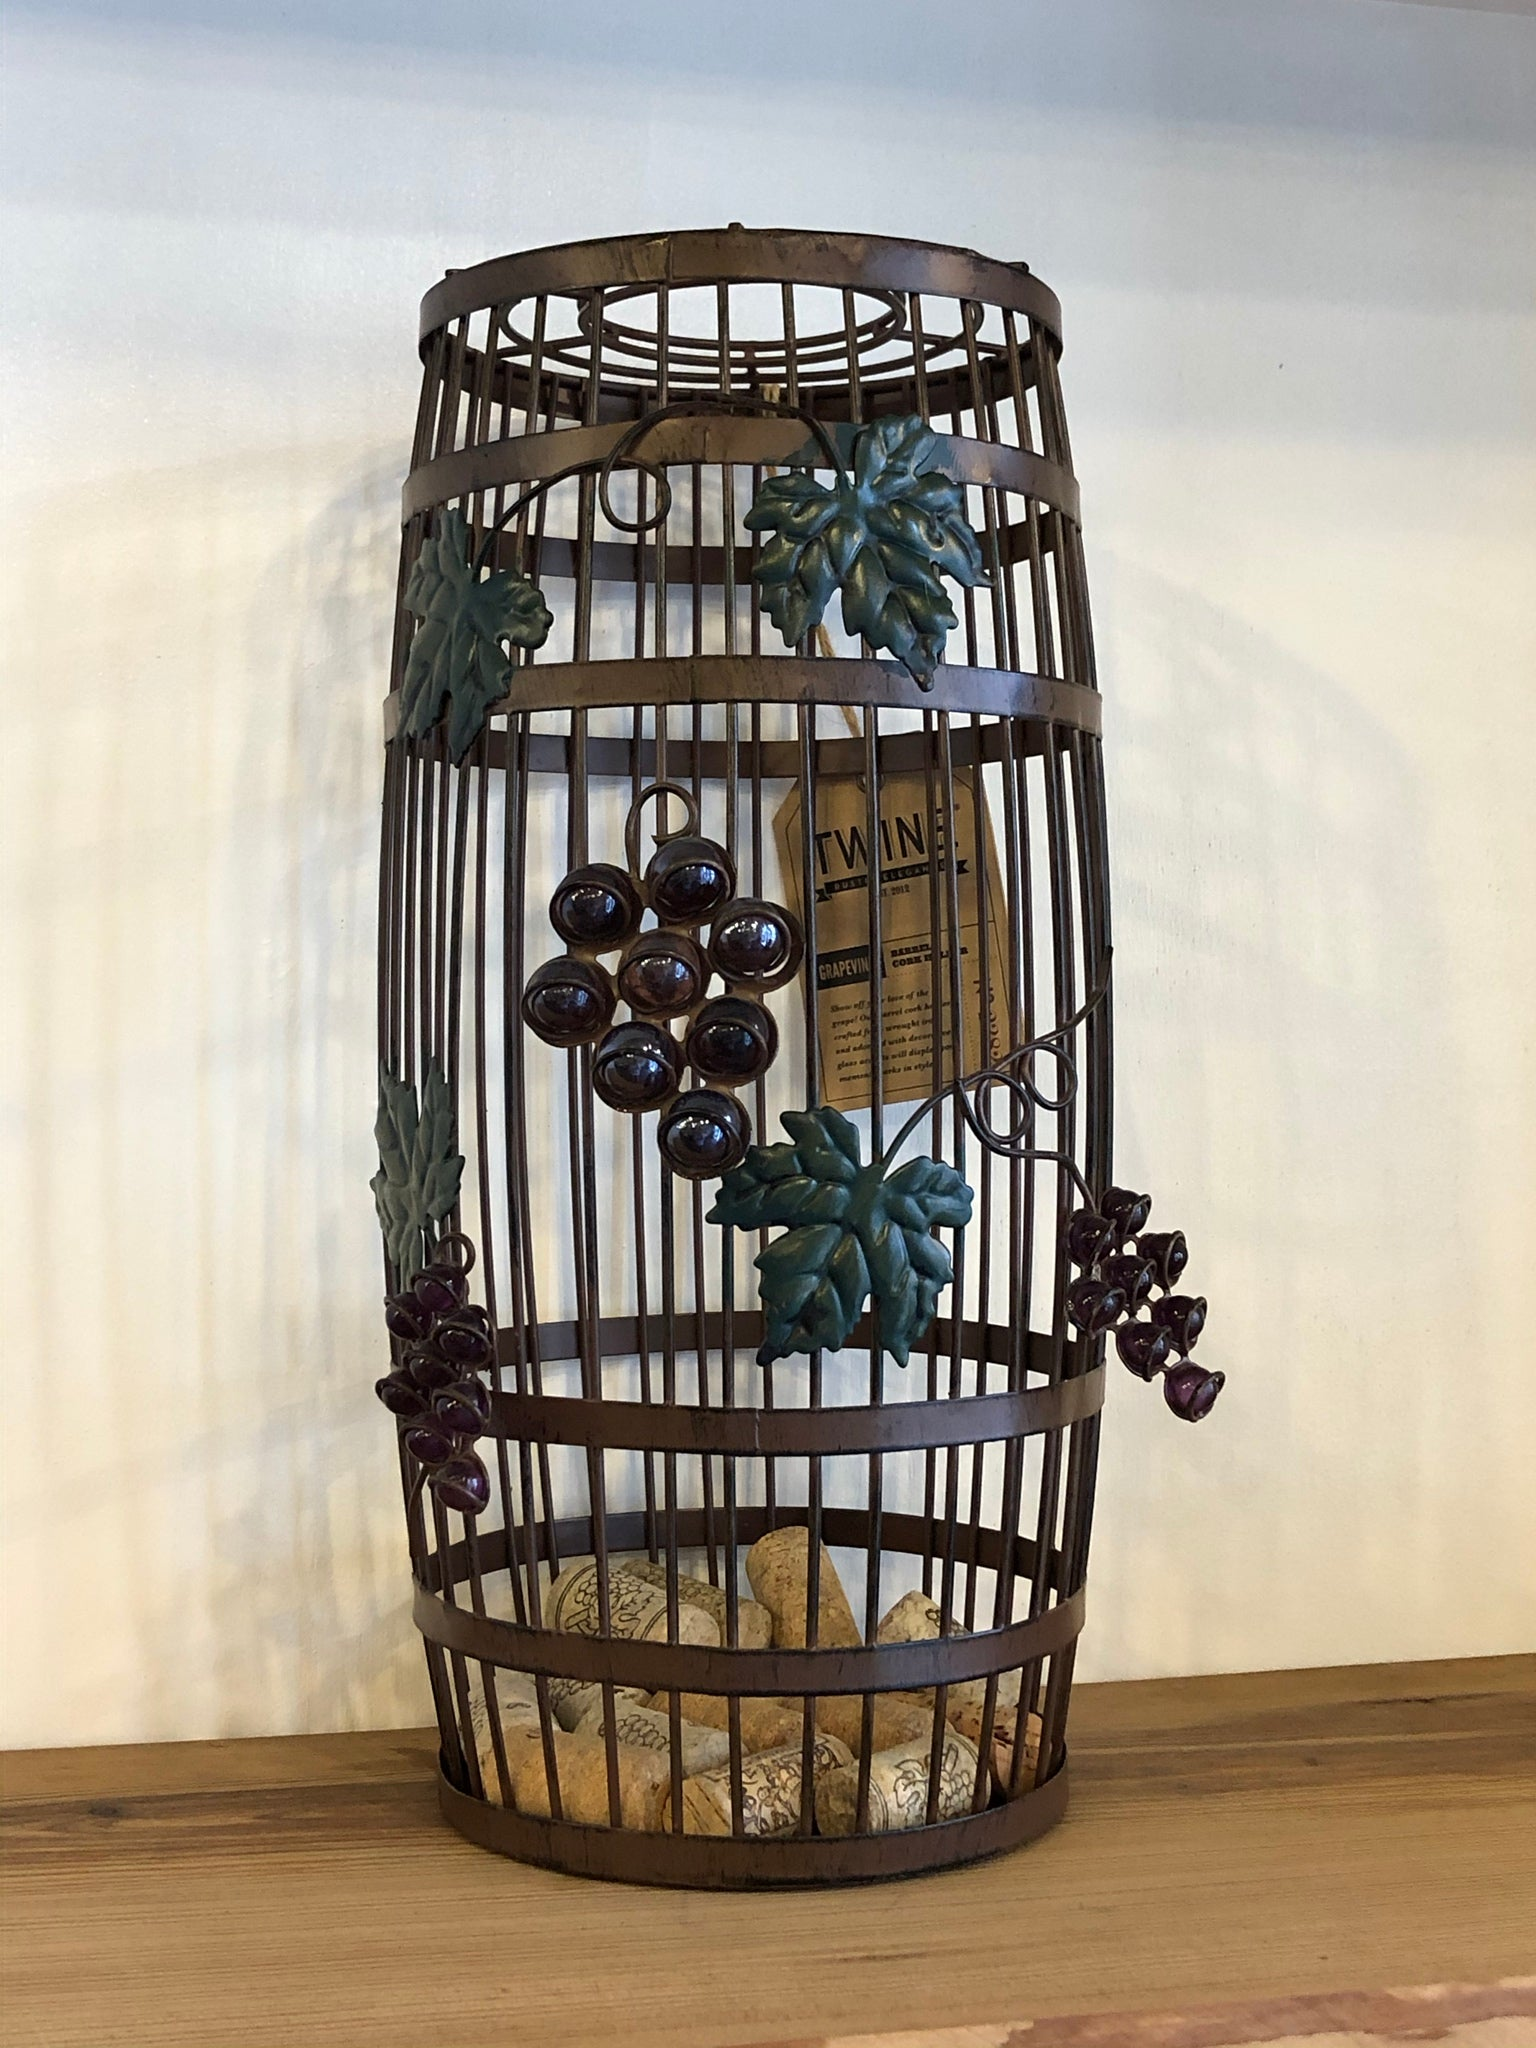 Grapevine Barrel Cork Holder by Twine